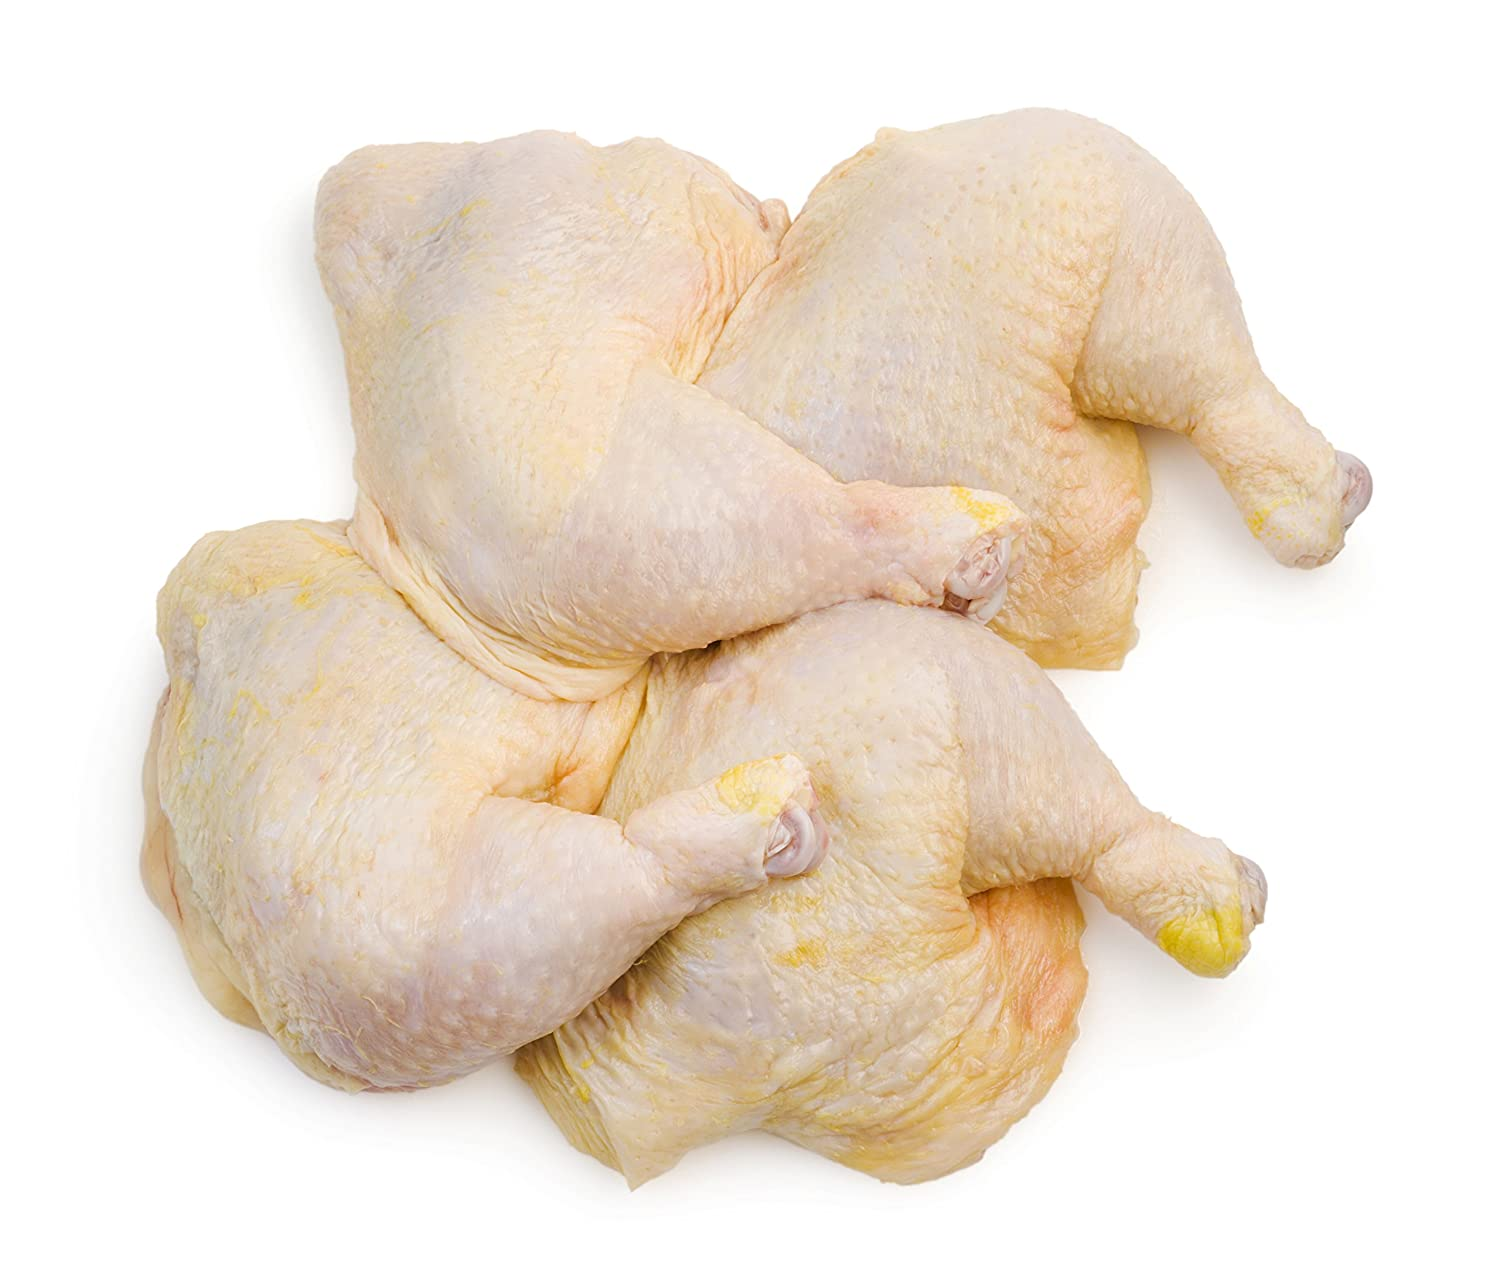 Double Certified Organic Whole Chicken Leg Quarters (9.25-9.75 Lbs) - Glatt Kosher